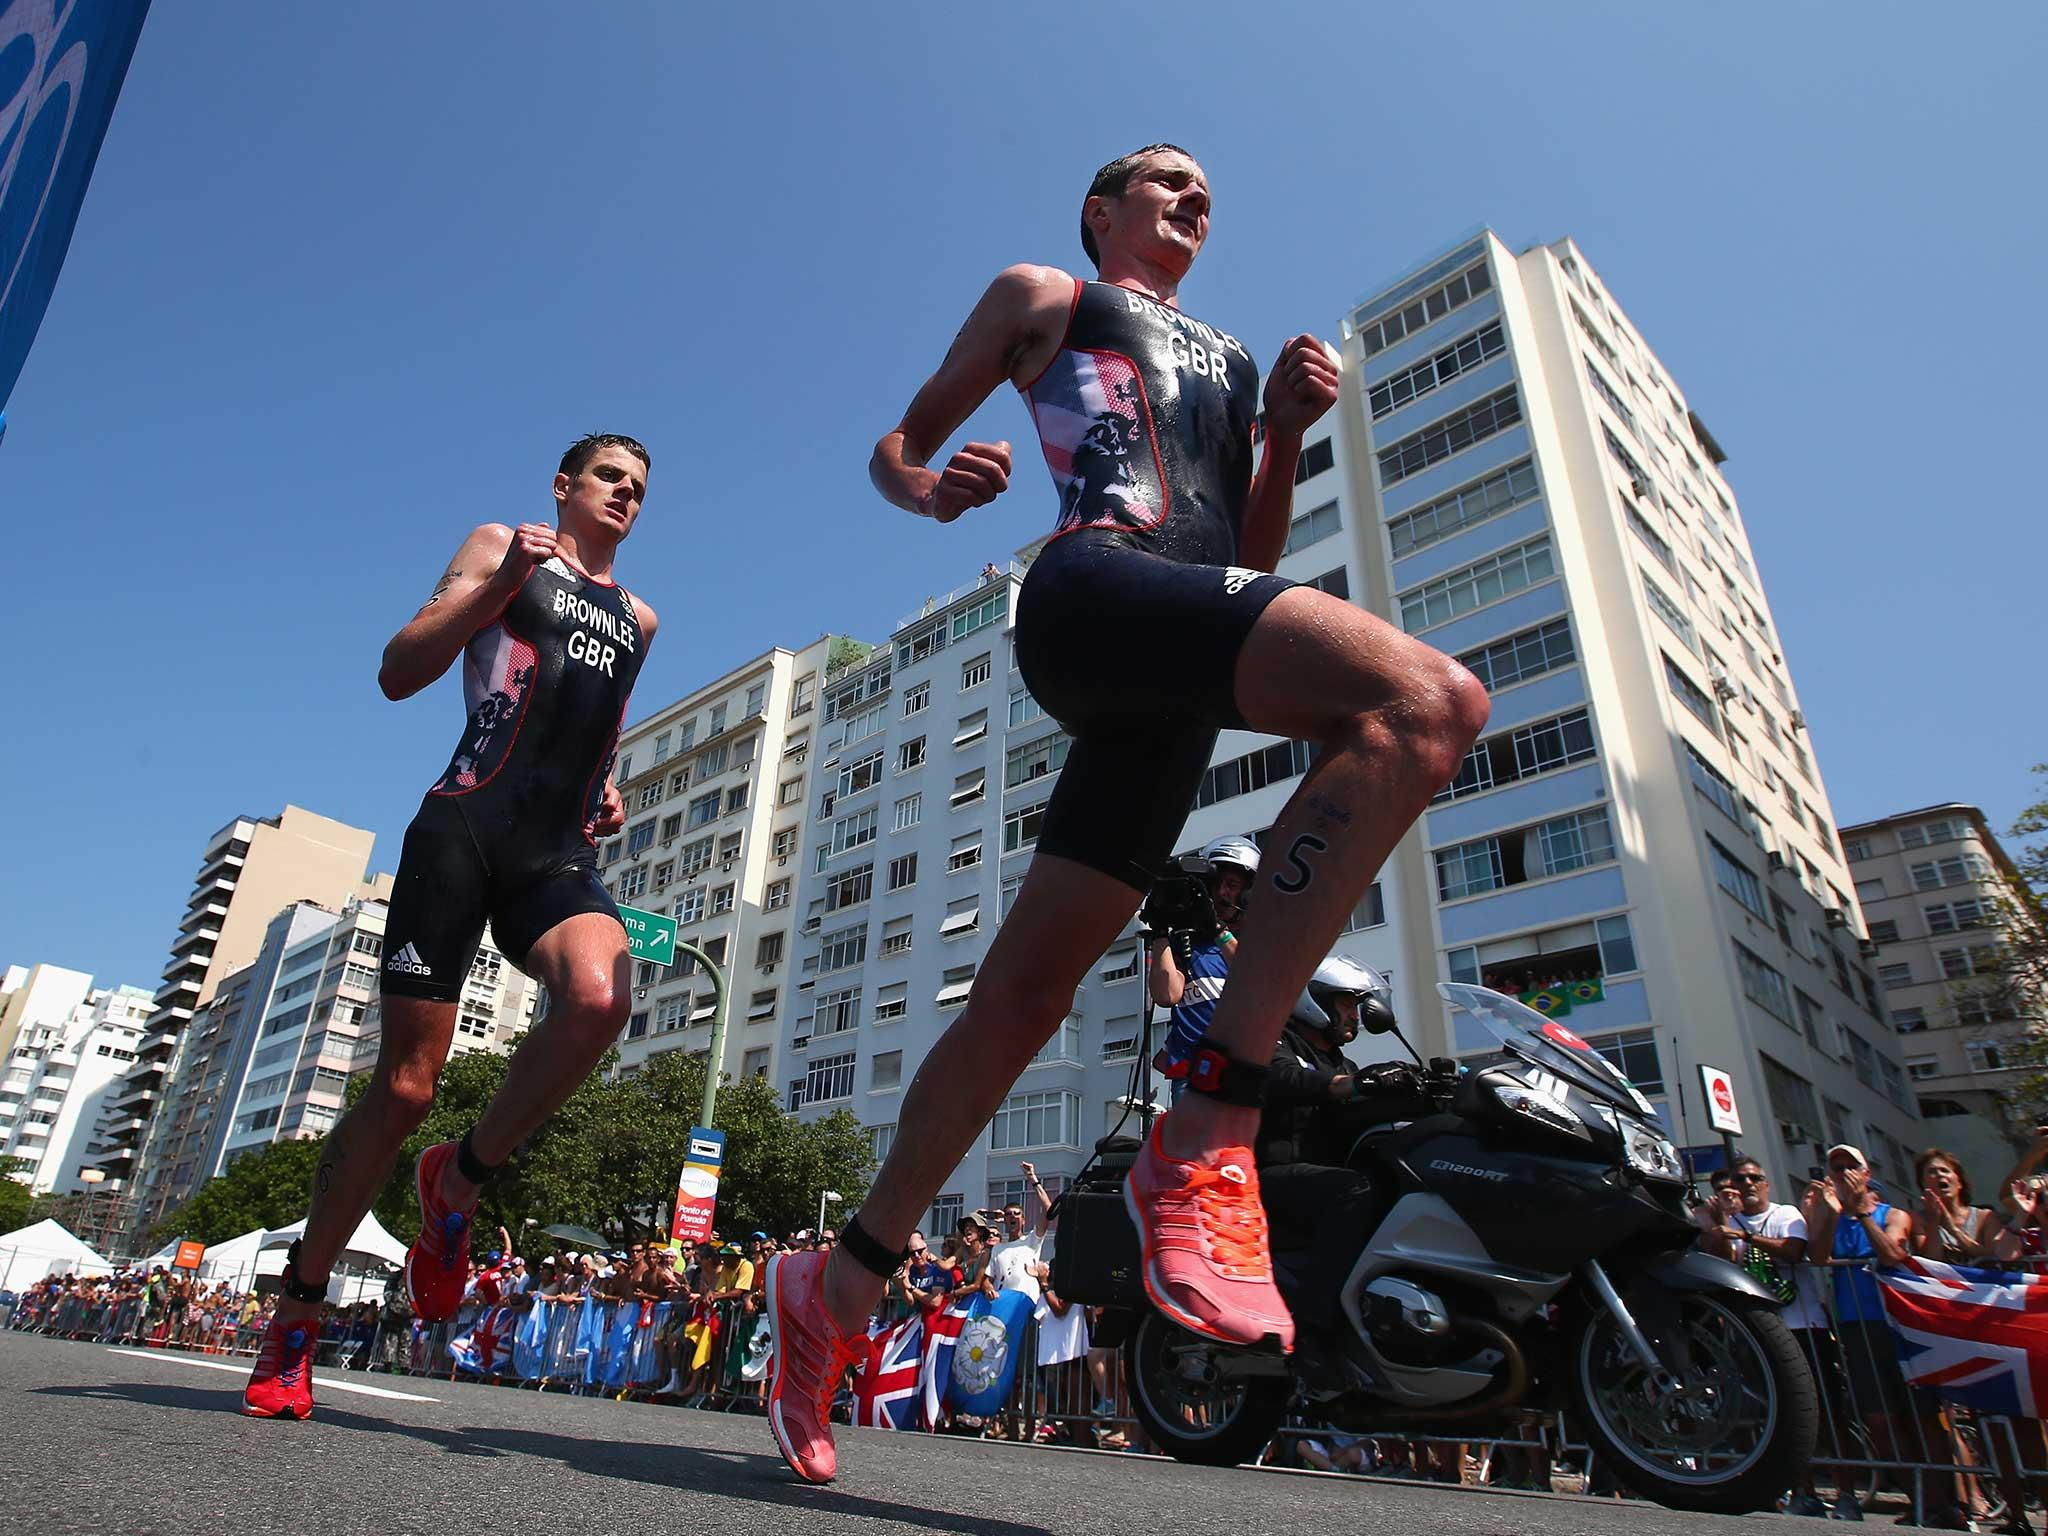 Triathlete brothers take first and second place